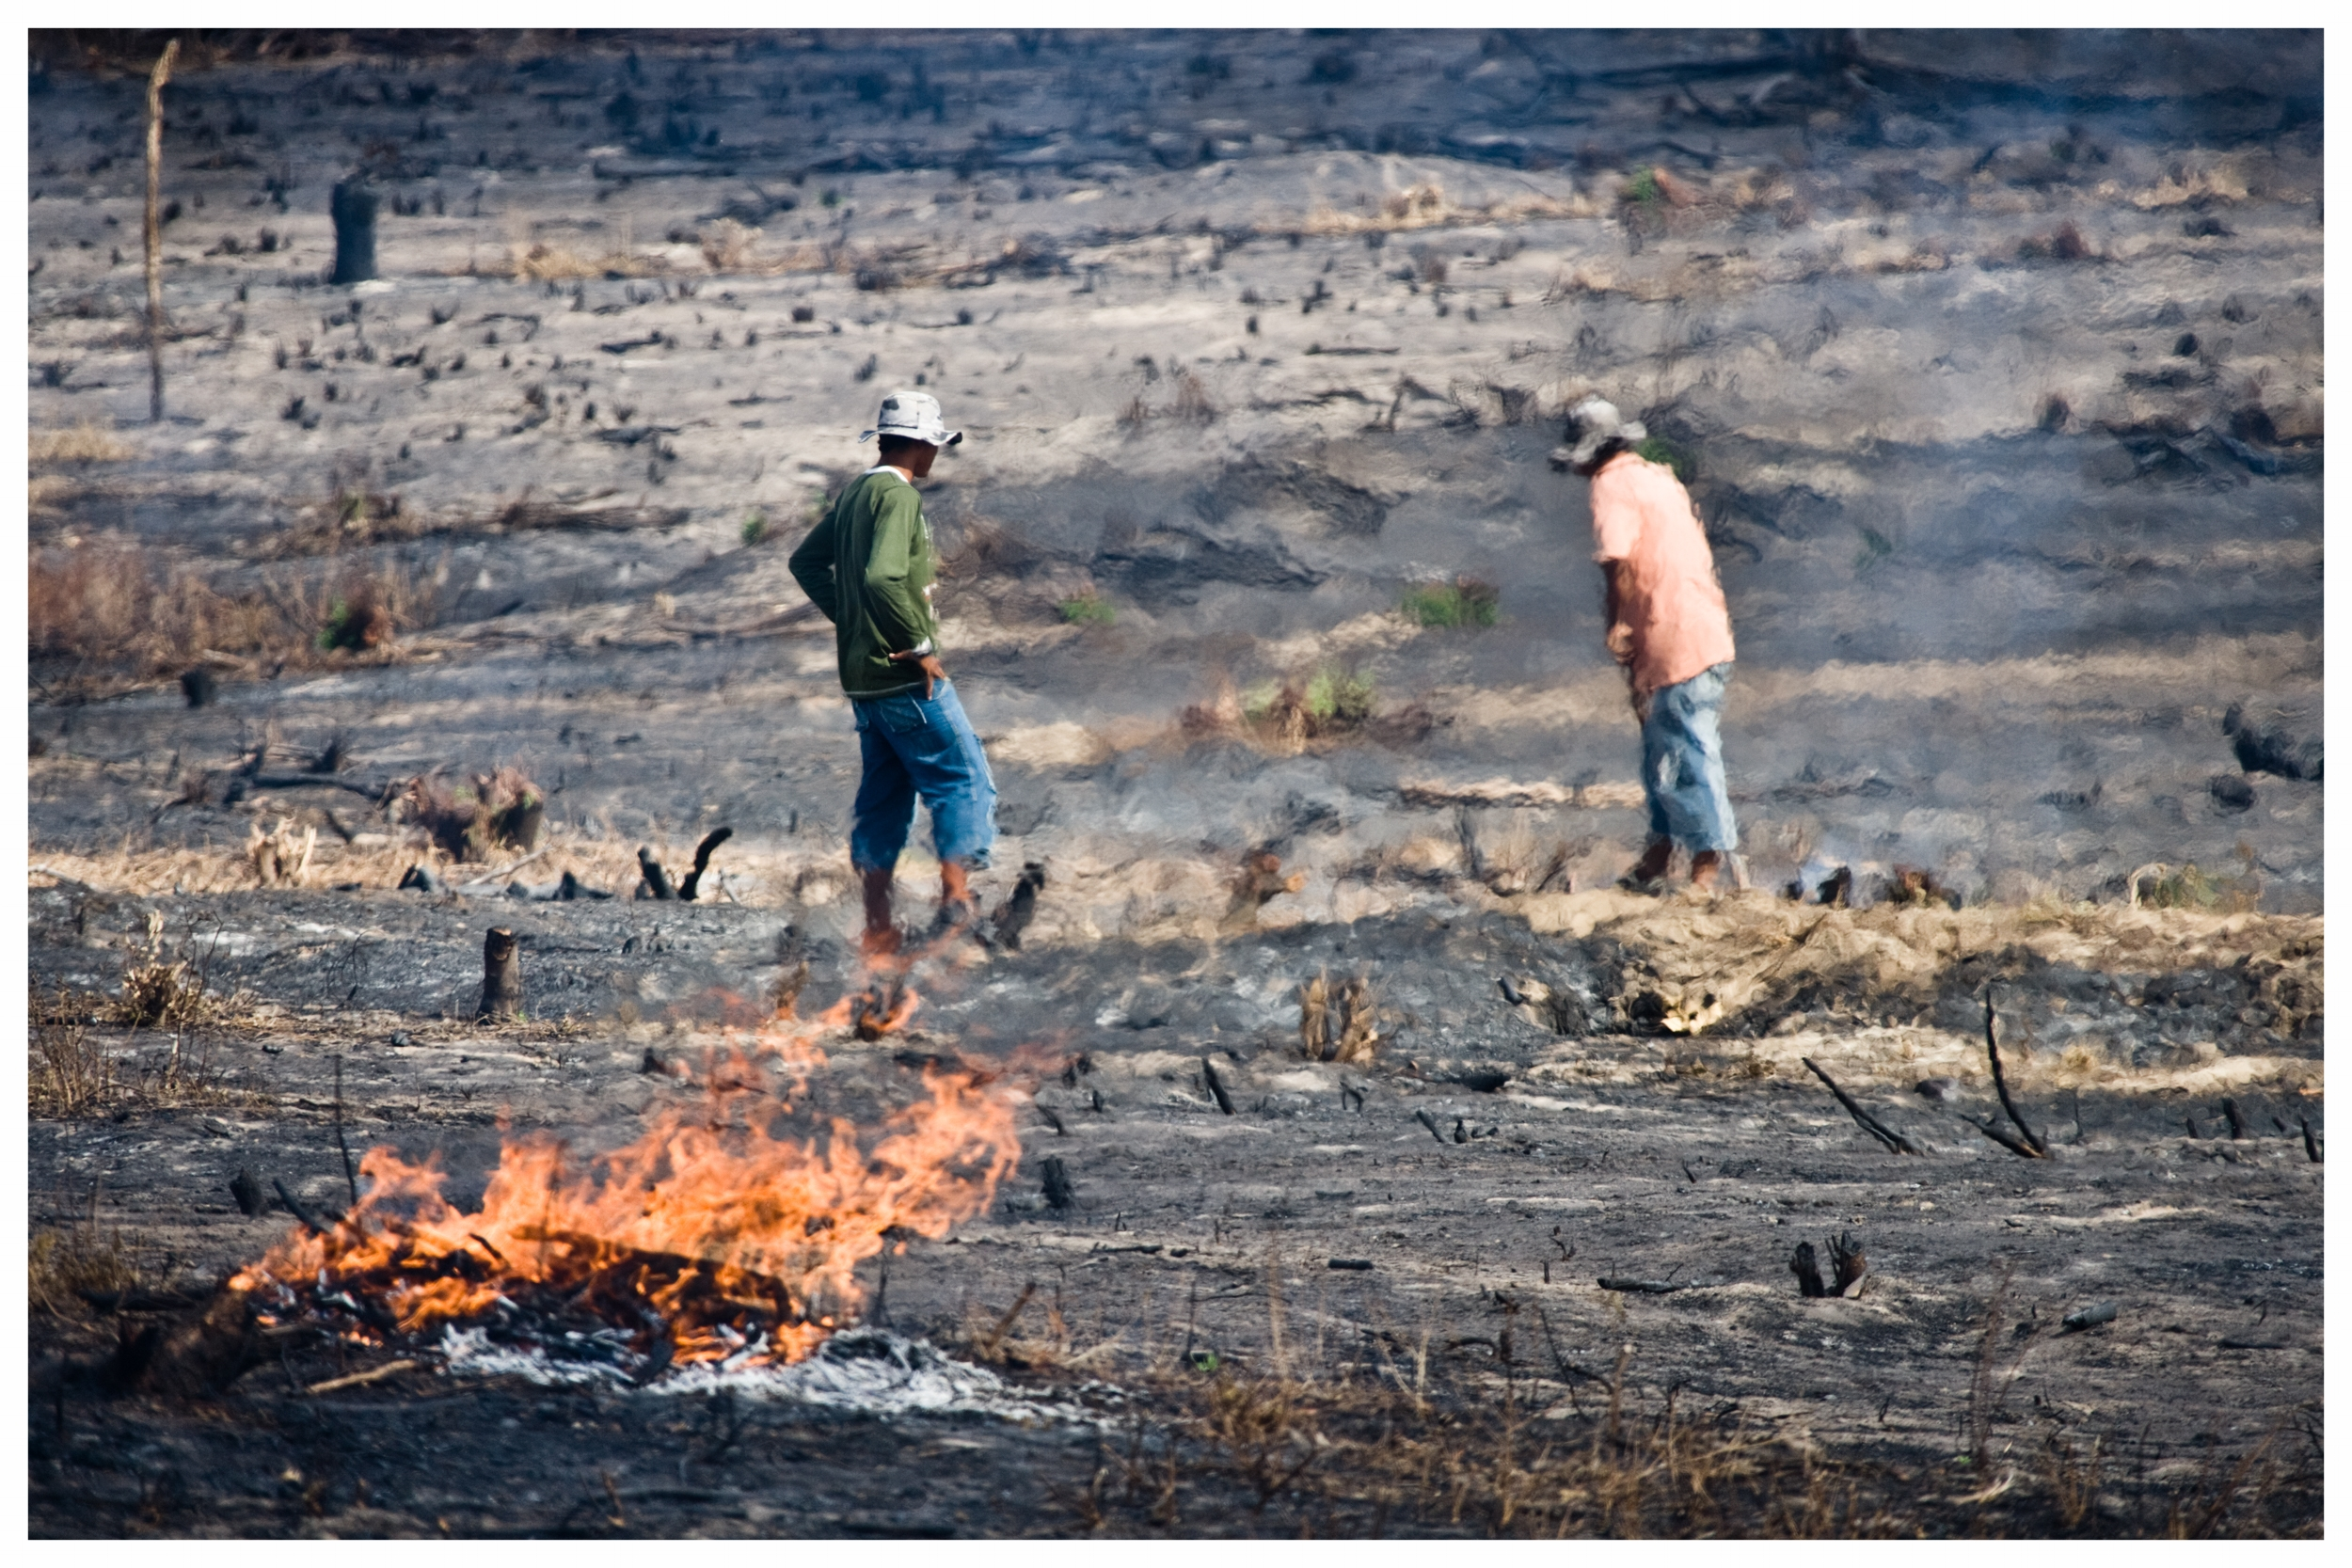 Farmers in north east Brazil clearing land to grow crops. Photo © Marcus Pekrins